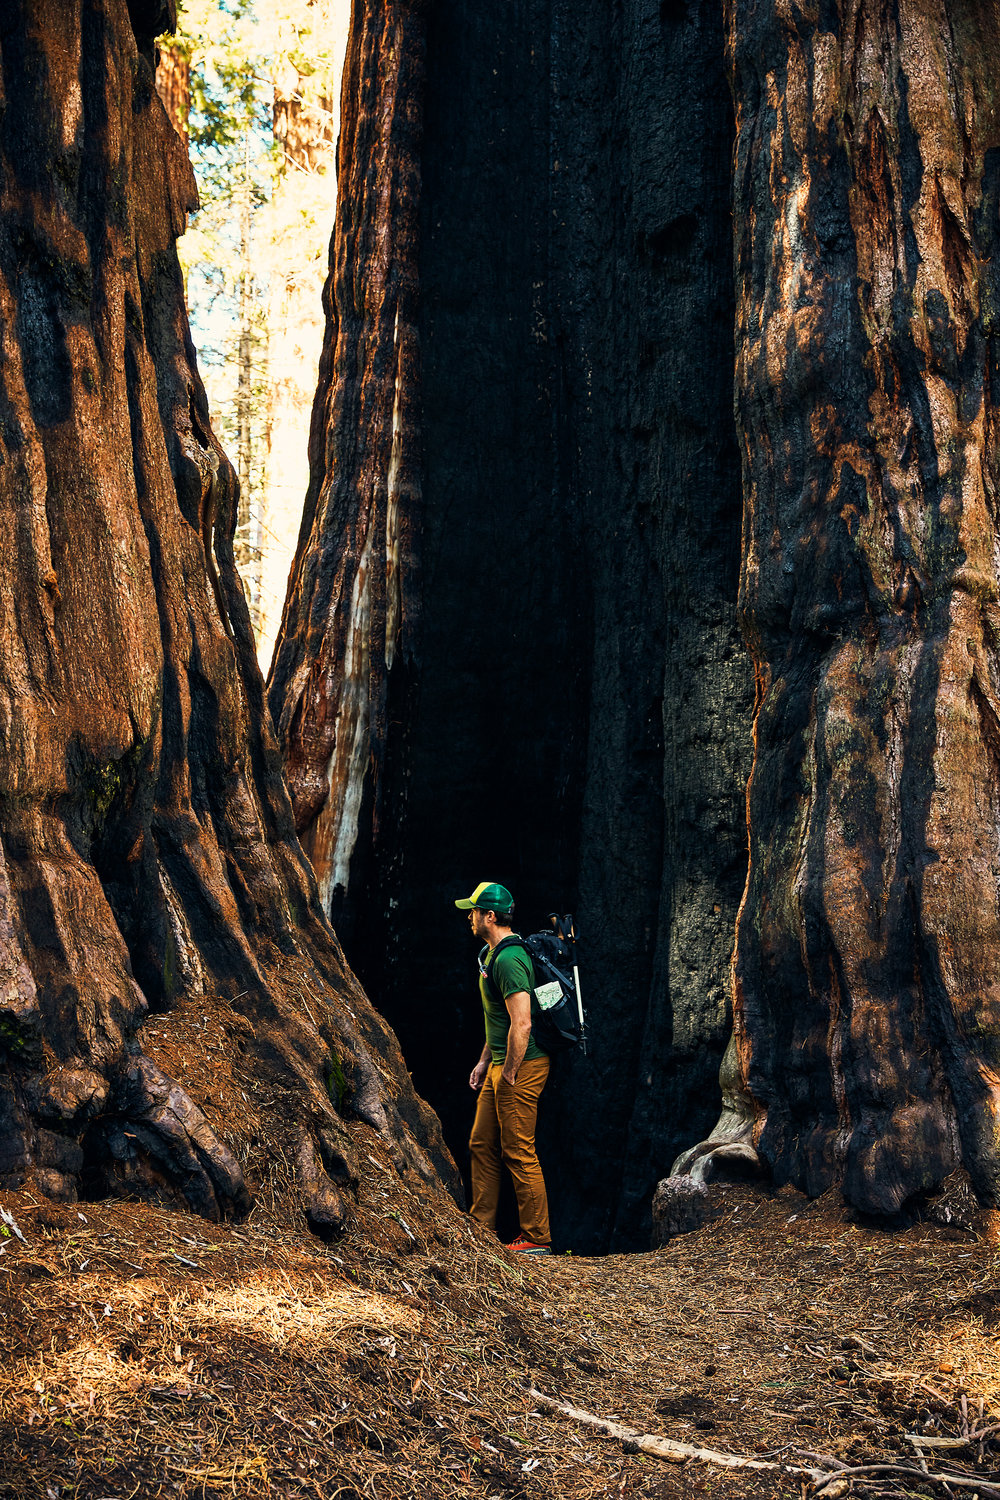 KINGS_CANYON_SEQUOIA_2018_0390_v1.jpg